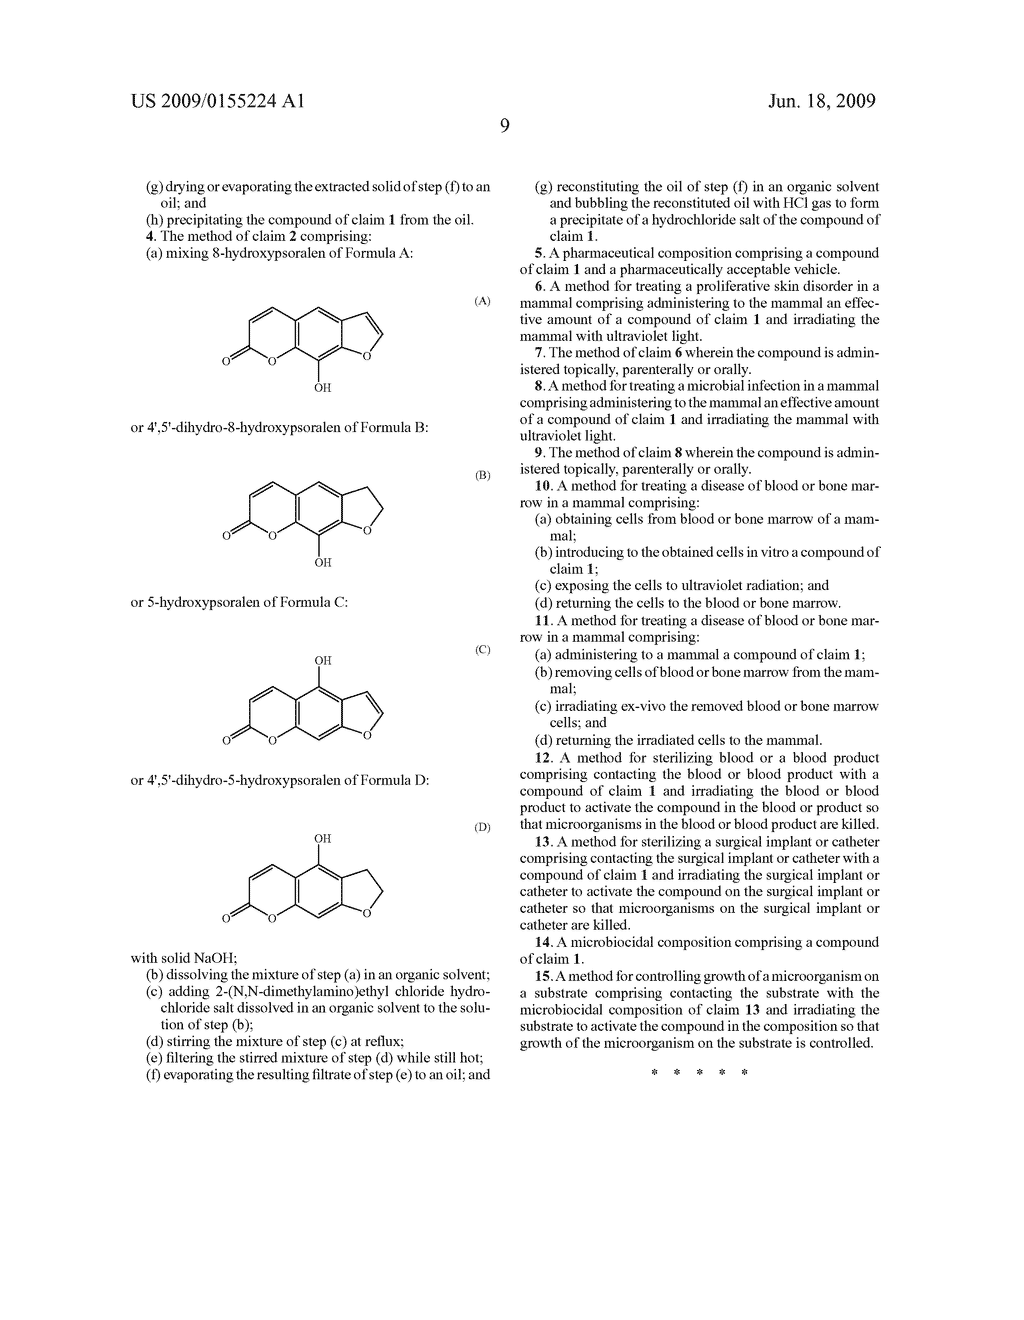 Dimethyl amino ethyl ether psoralens and methods for their production and use - diagram, schematic, and image 10